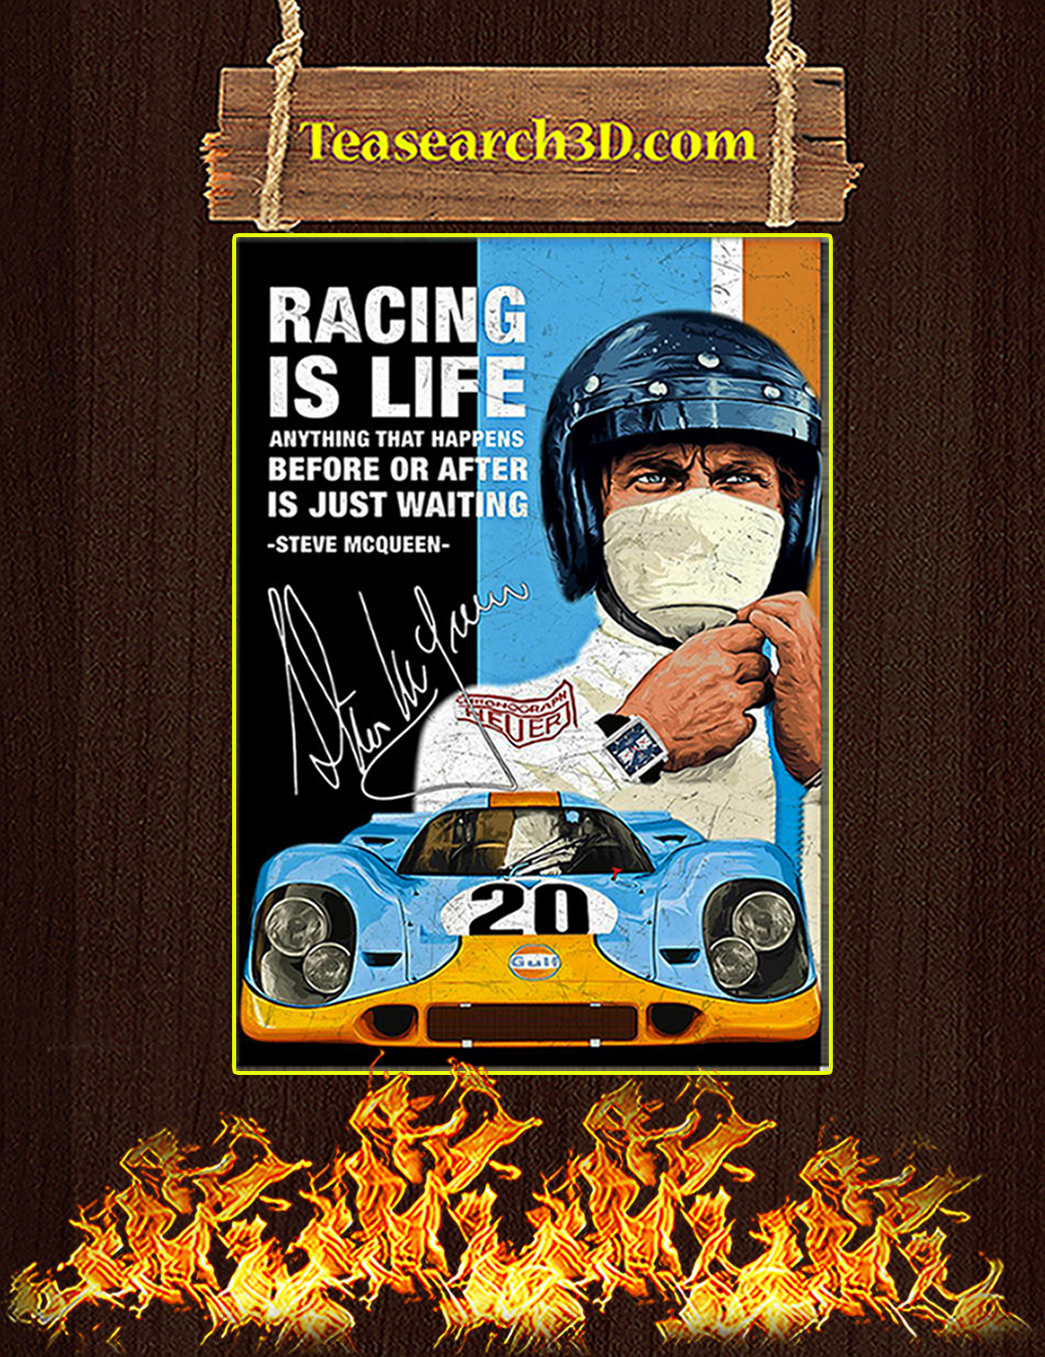 Racing Is Life Steve McQueen Signature Poster A1